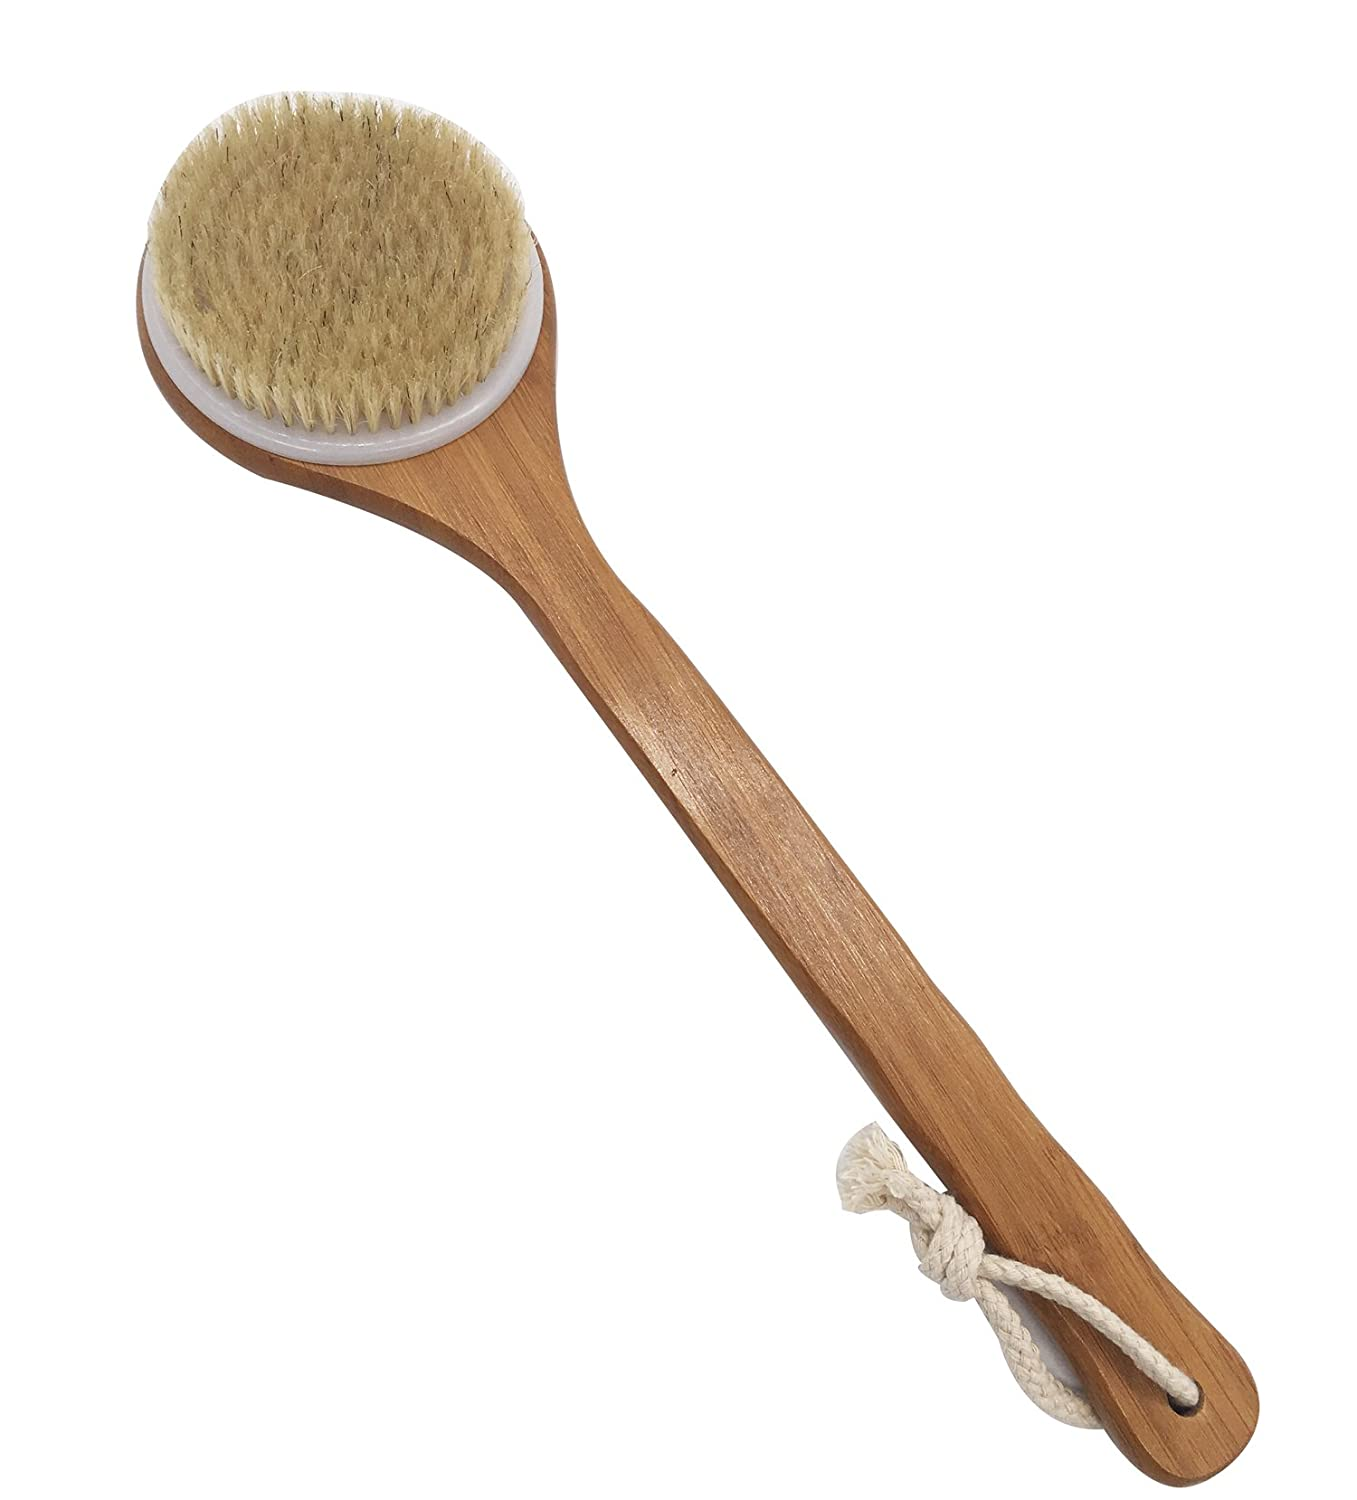 Bath Brush with Long Bamboo Handle - Natural Bristle Back Scrubber for Exfoliating Skin, Improve Circulation and Shower Brush for Skin Health - Wet Or Dry Body Brushing KOOTIPS Kootips-1-4123